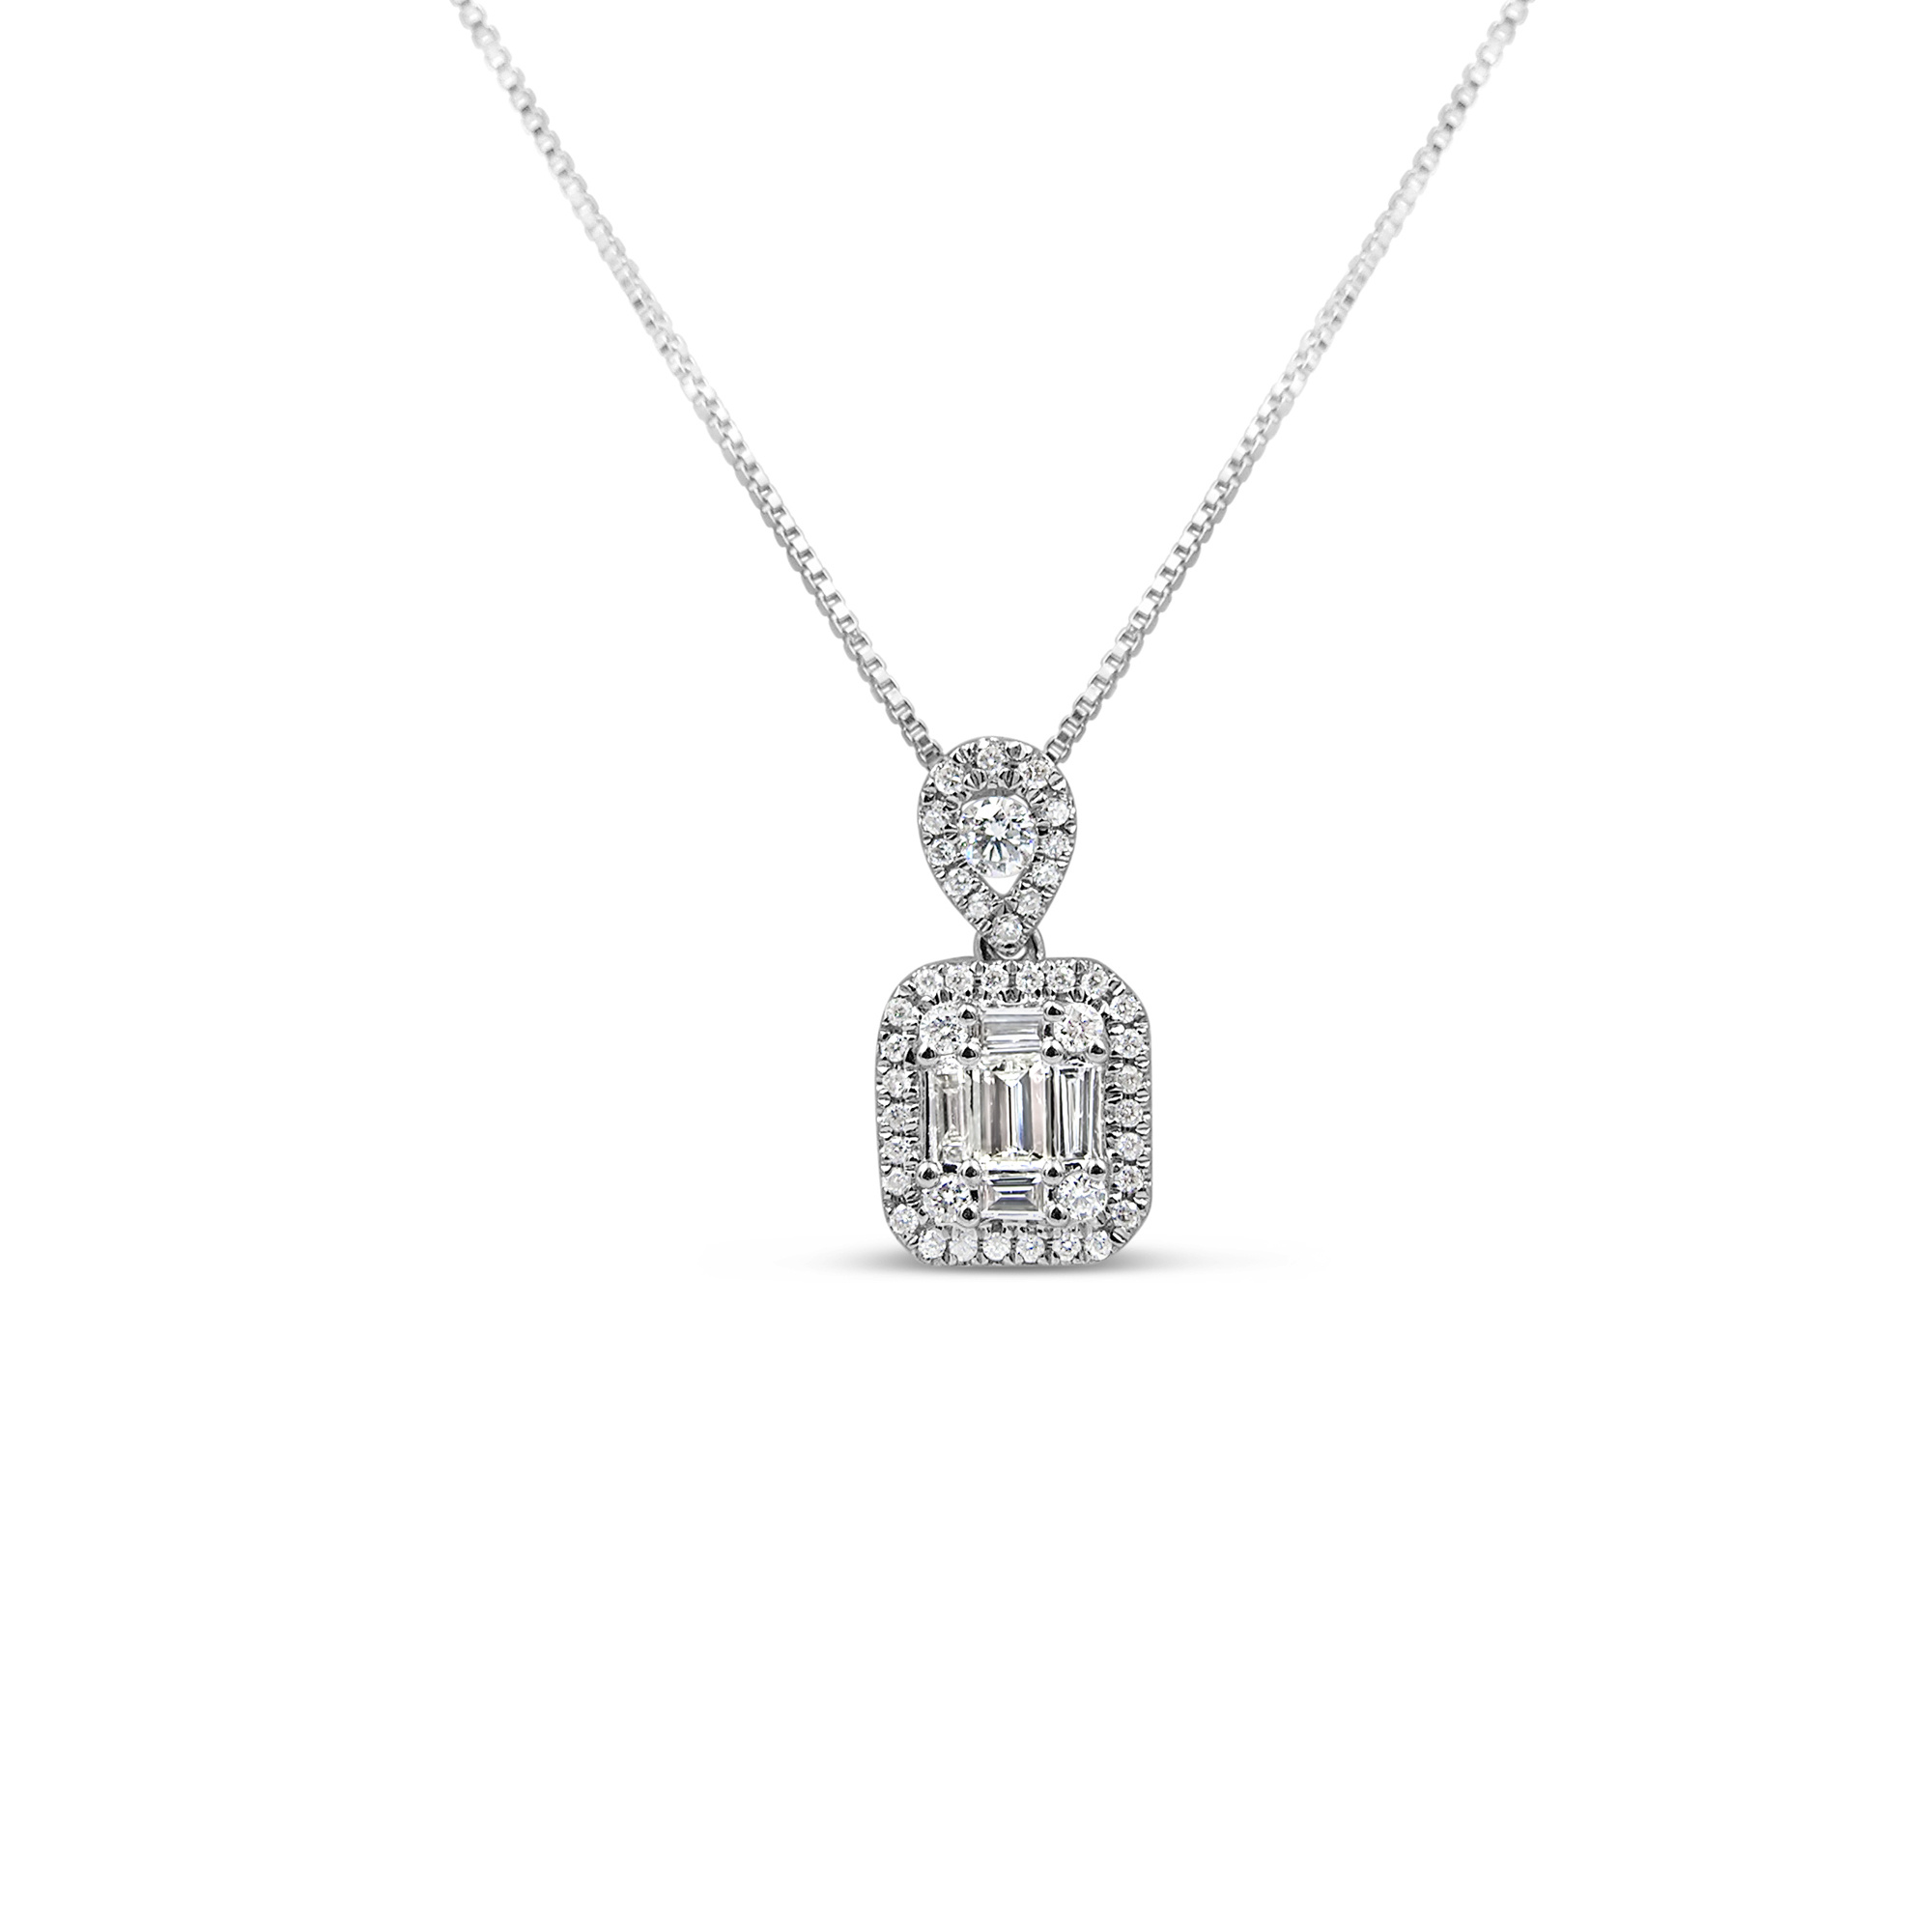 18kt white gold pendant with 0.29 ct diamonds